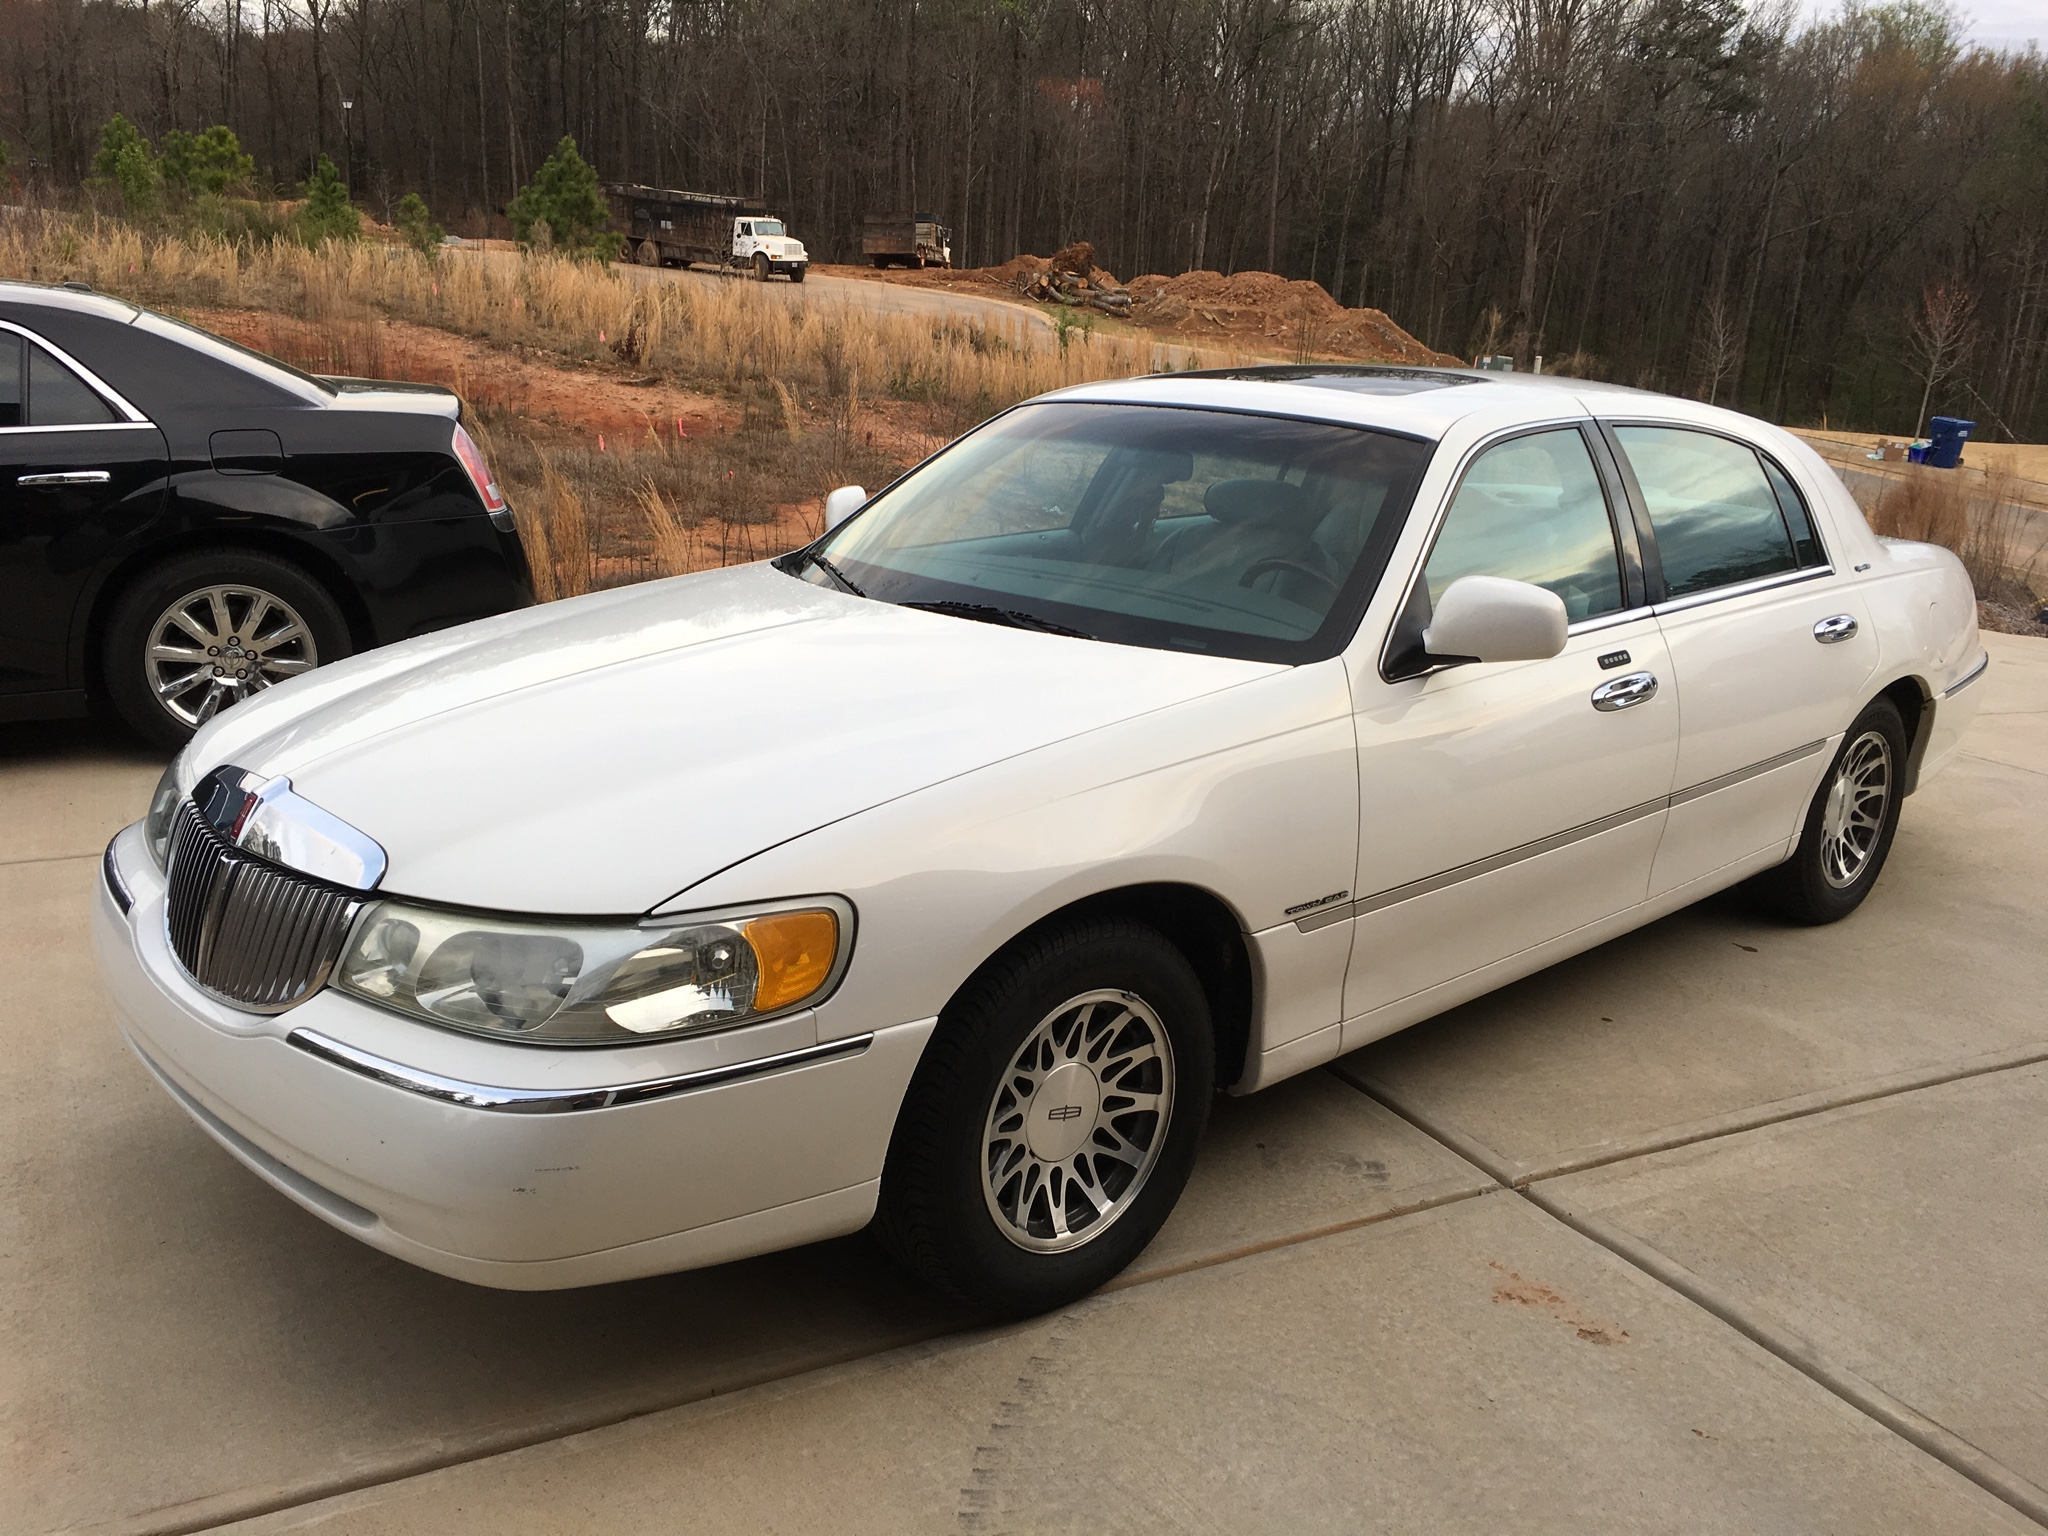 2002 Lincoln Town Car Signature Series  Raylan Givens Special  For Sale